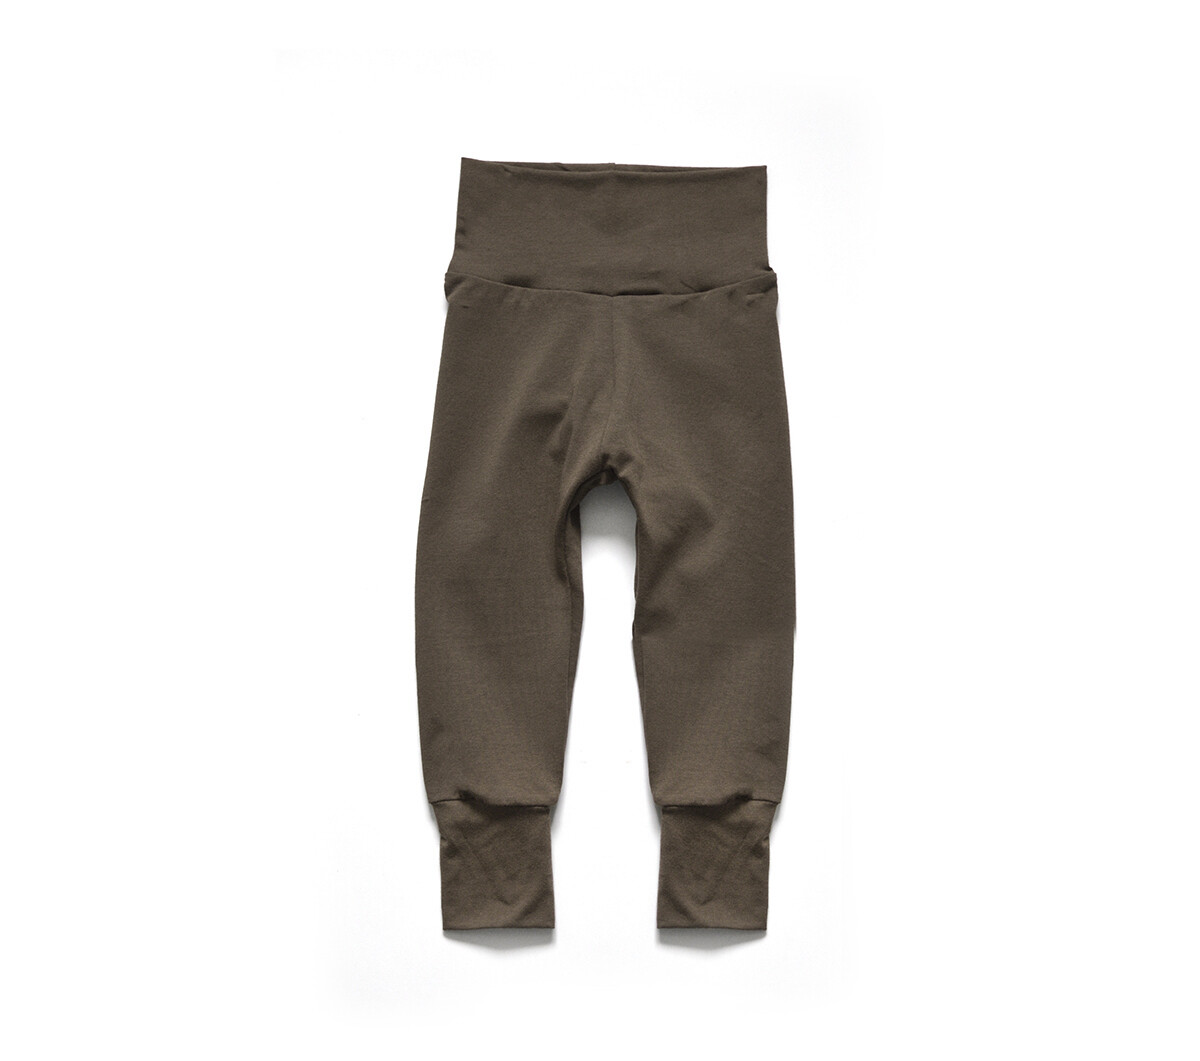 Little Sprout Pants™ in Earth   Grow With Me Leggings - Bamboo